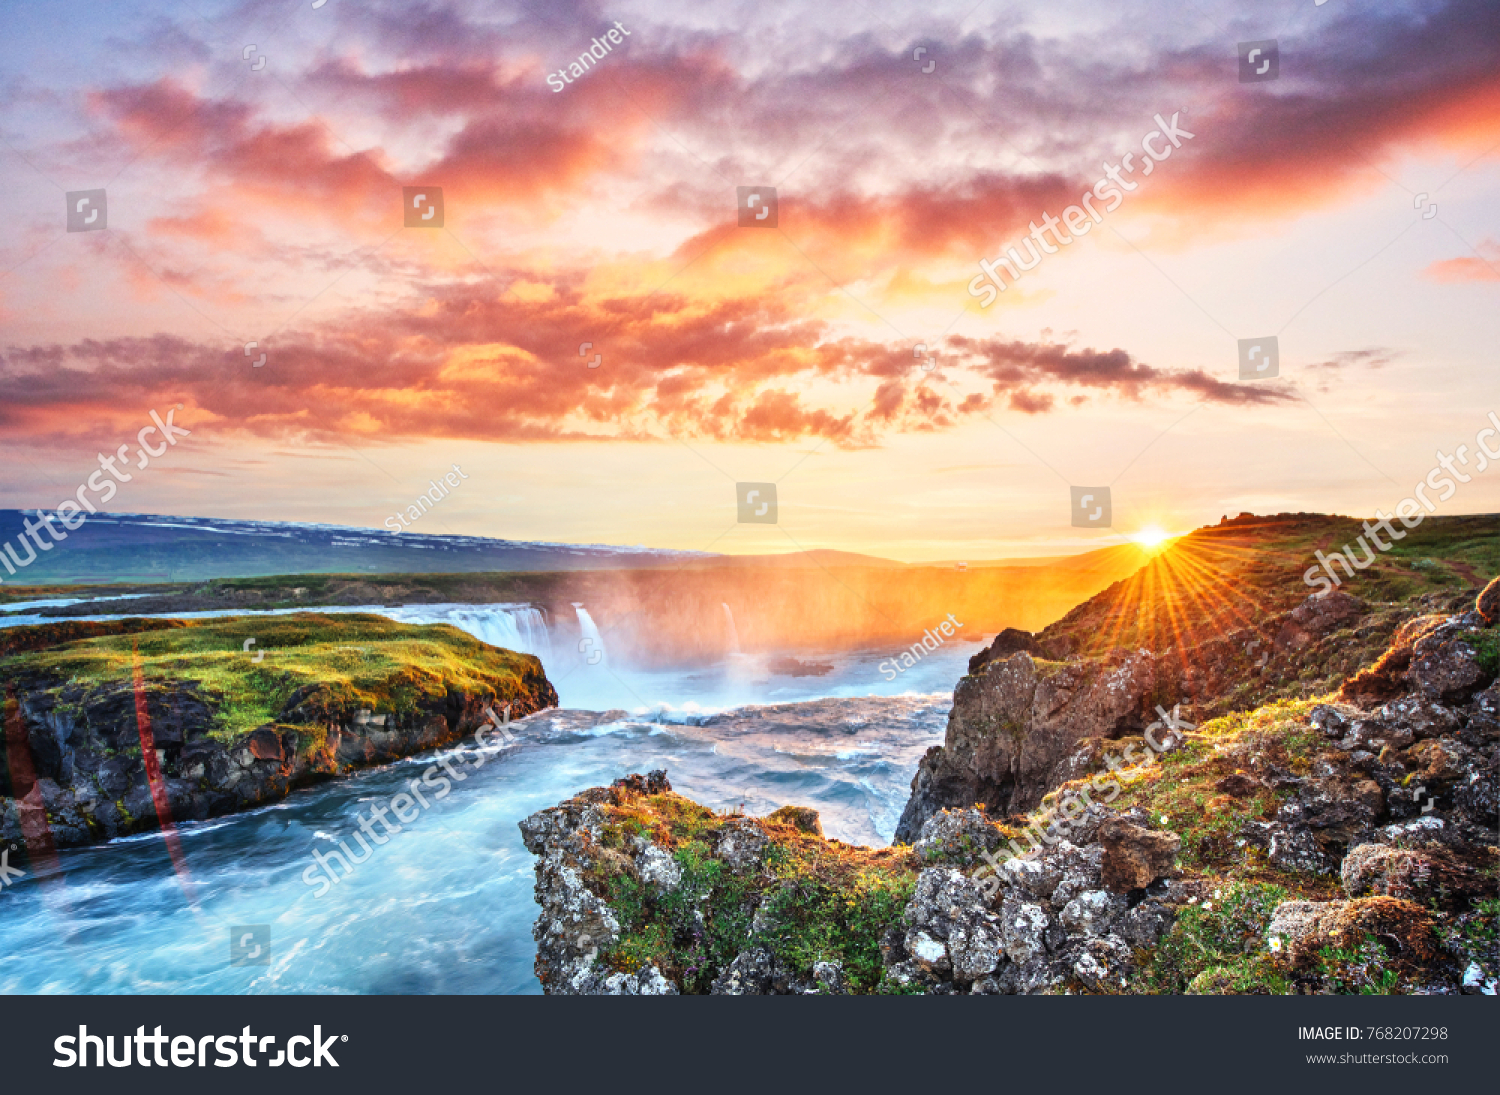 The picturesque sunset over landscapes and waterfalls. Kirkjufell mountain, Iceland #768207298